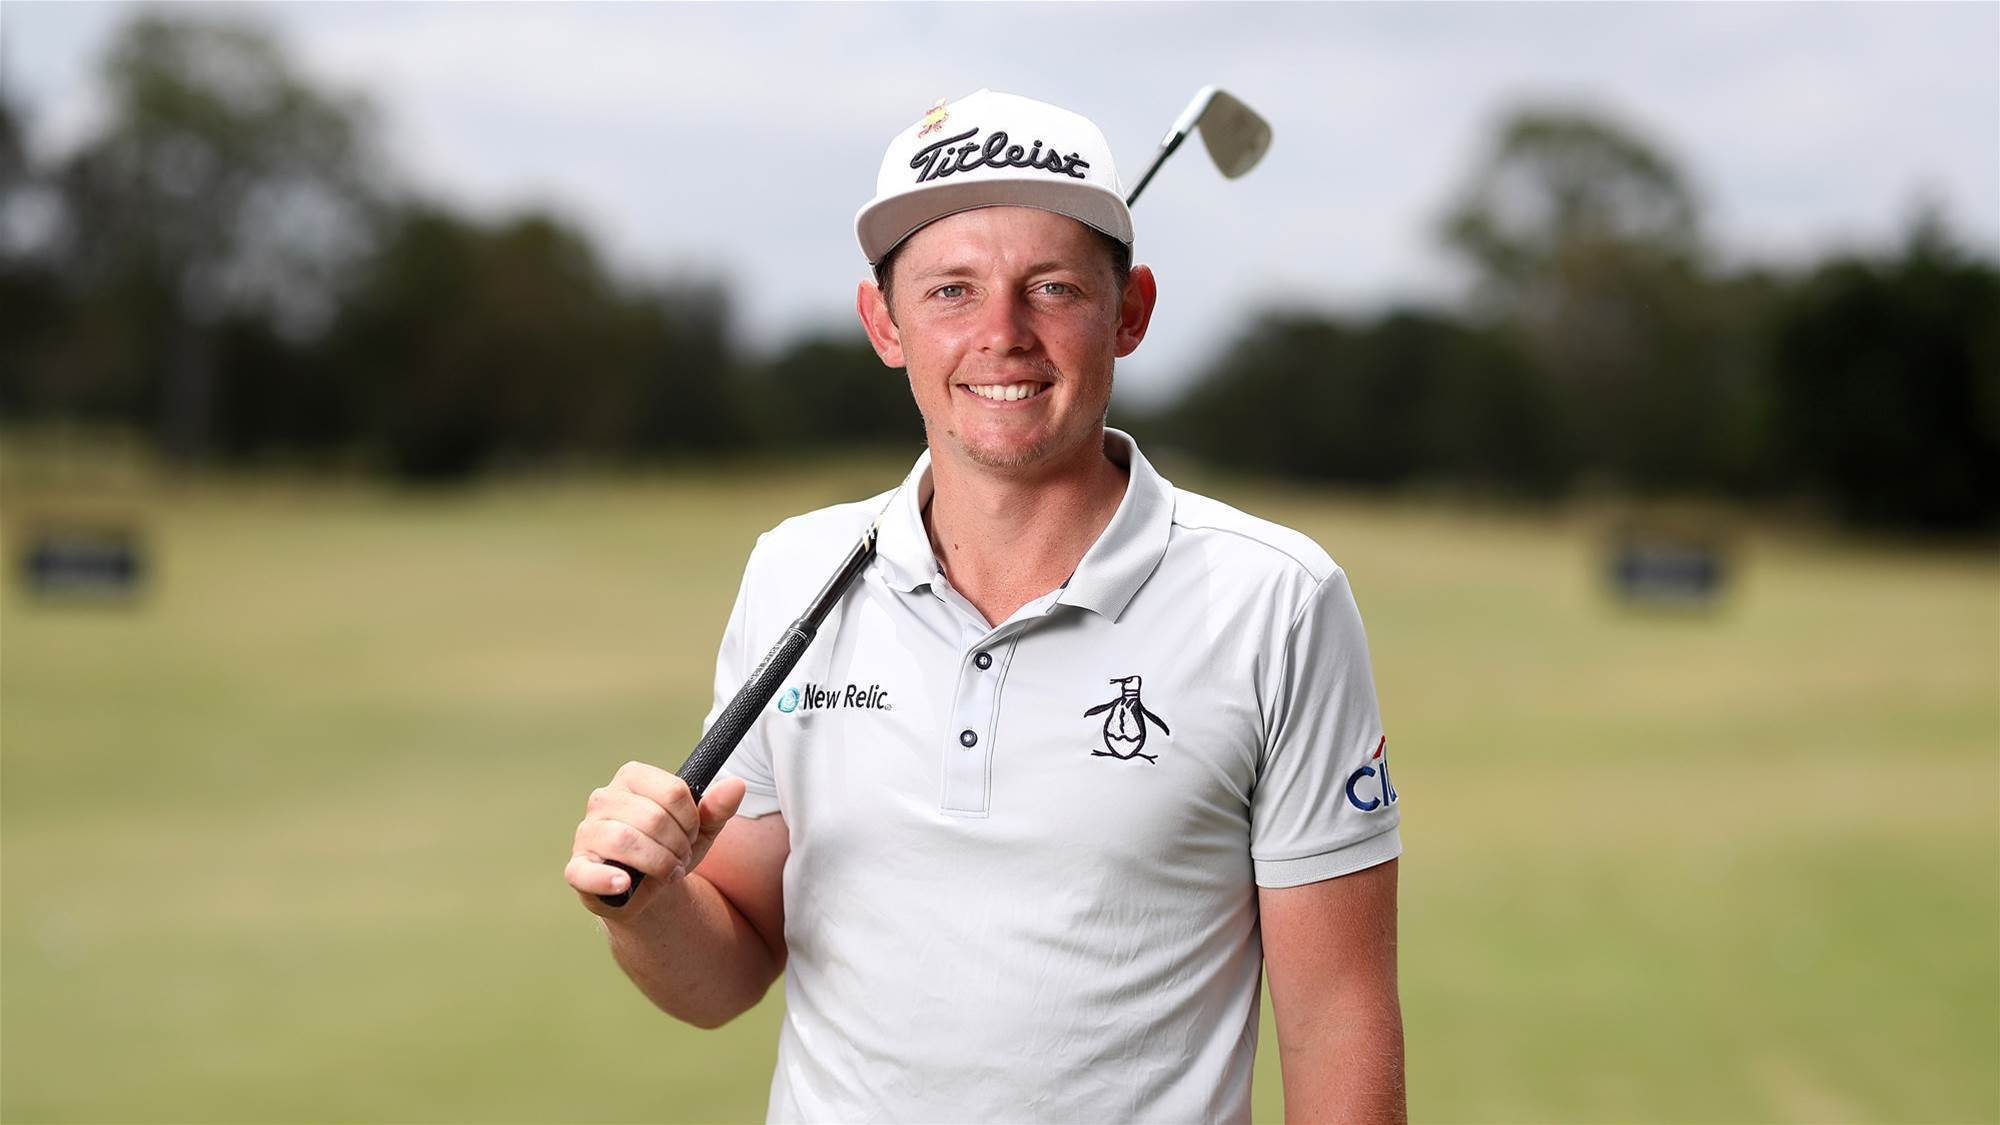 Smith set to defend Australian PGA